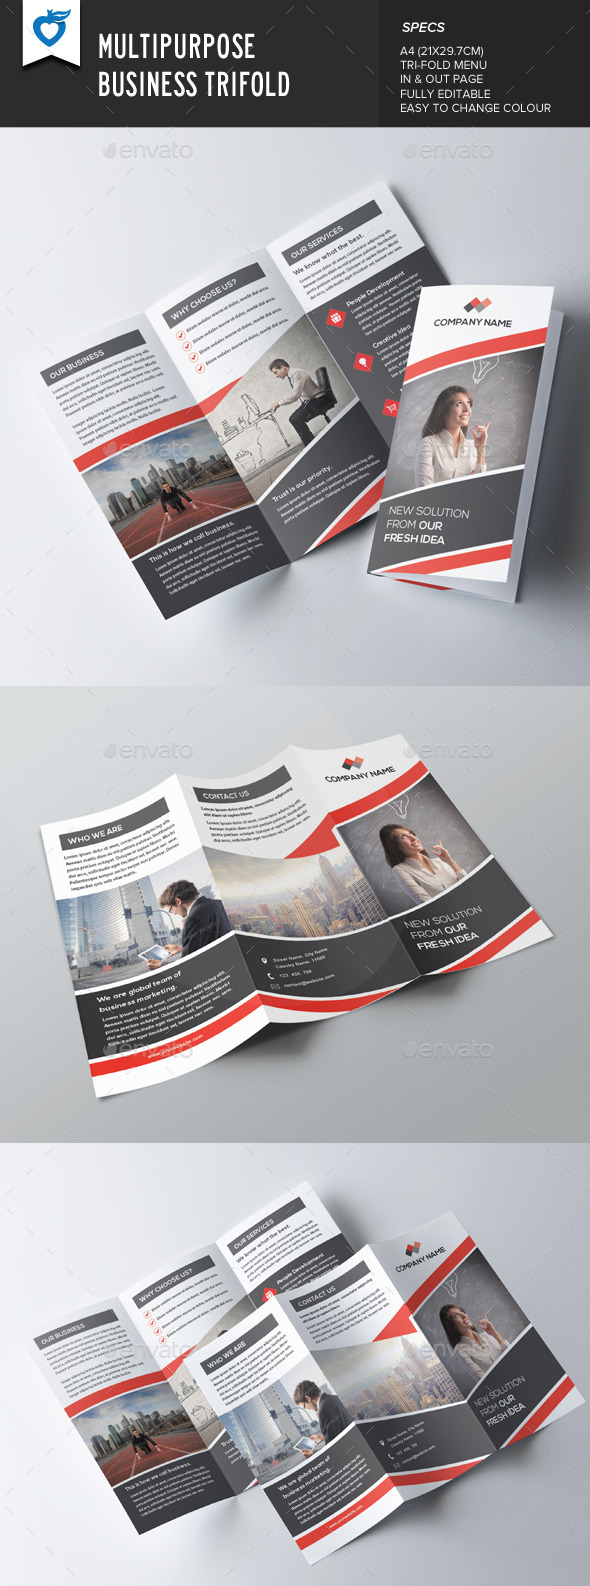 GraphicRiver Multipurpose Business Trifold Brochure 9720286